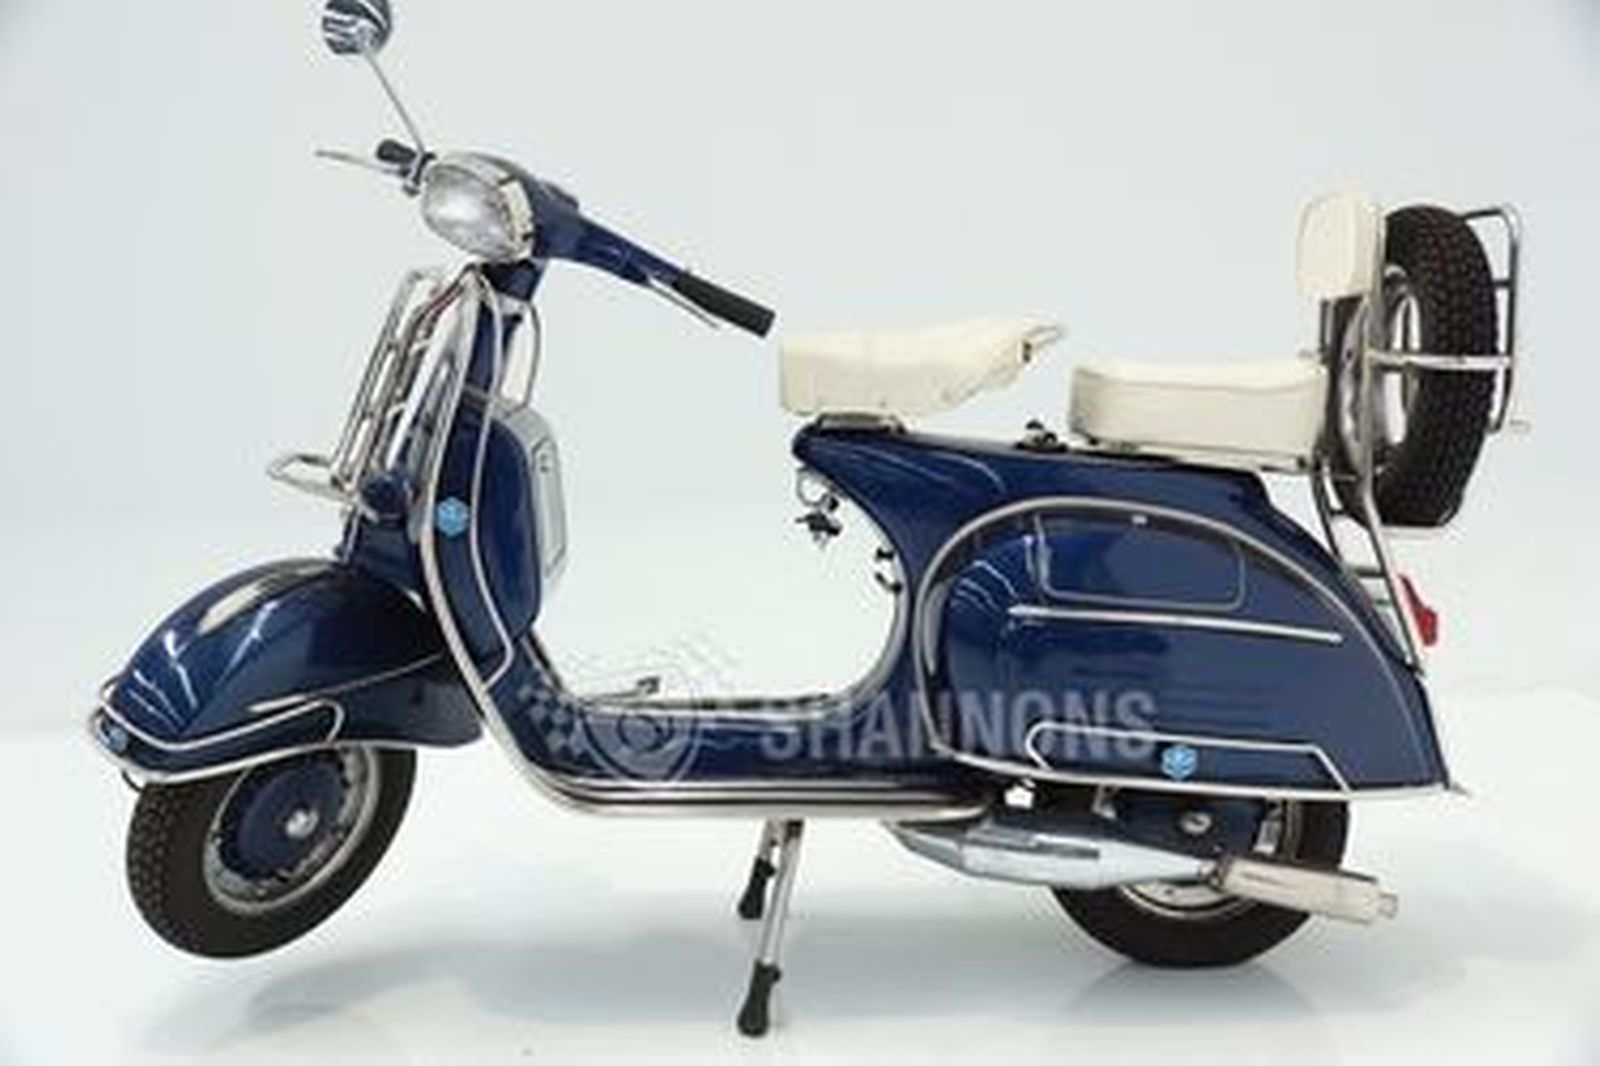 Sold Vespa Piaggio Sprint 150cc Scooter Auctions Lot 6 Shannons